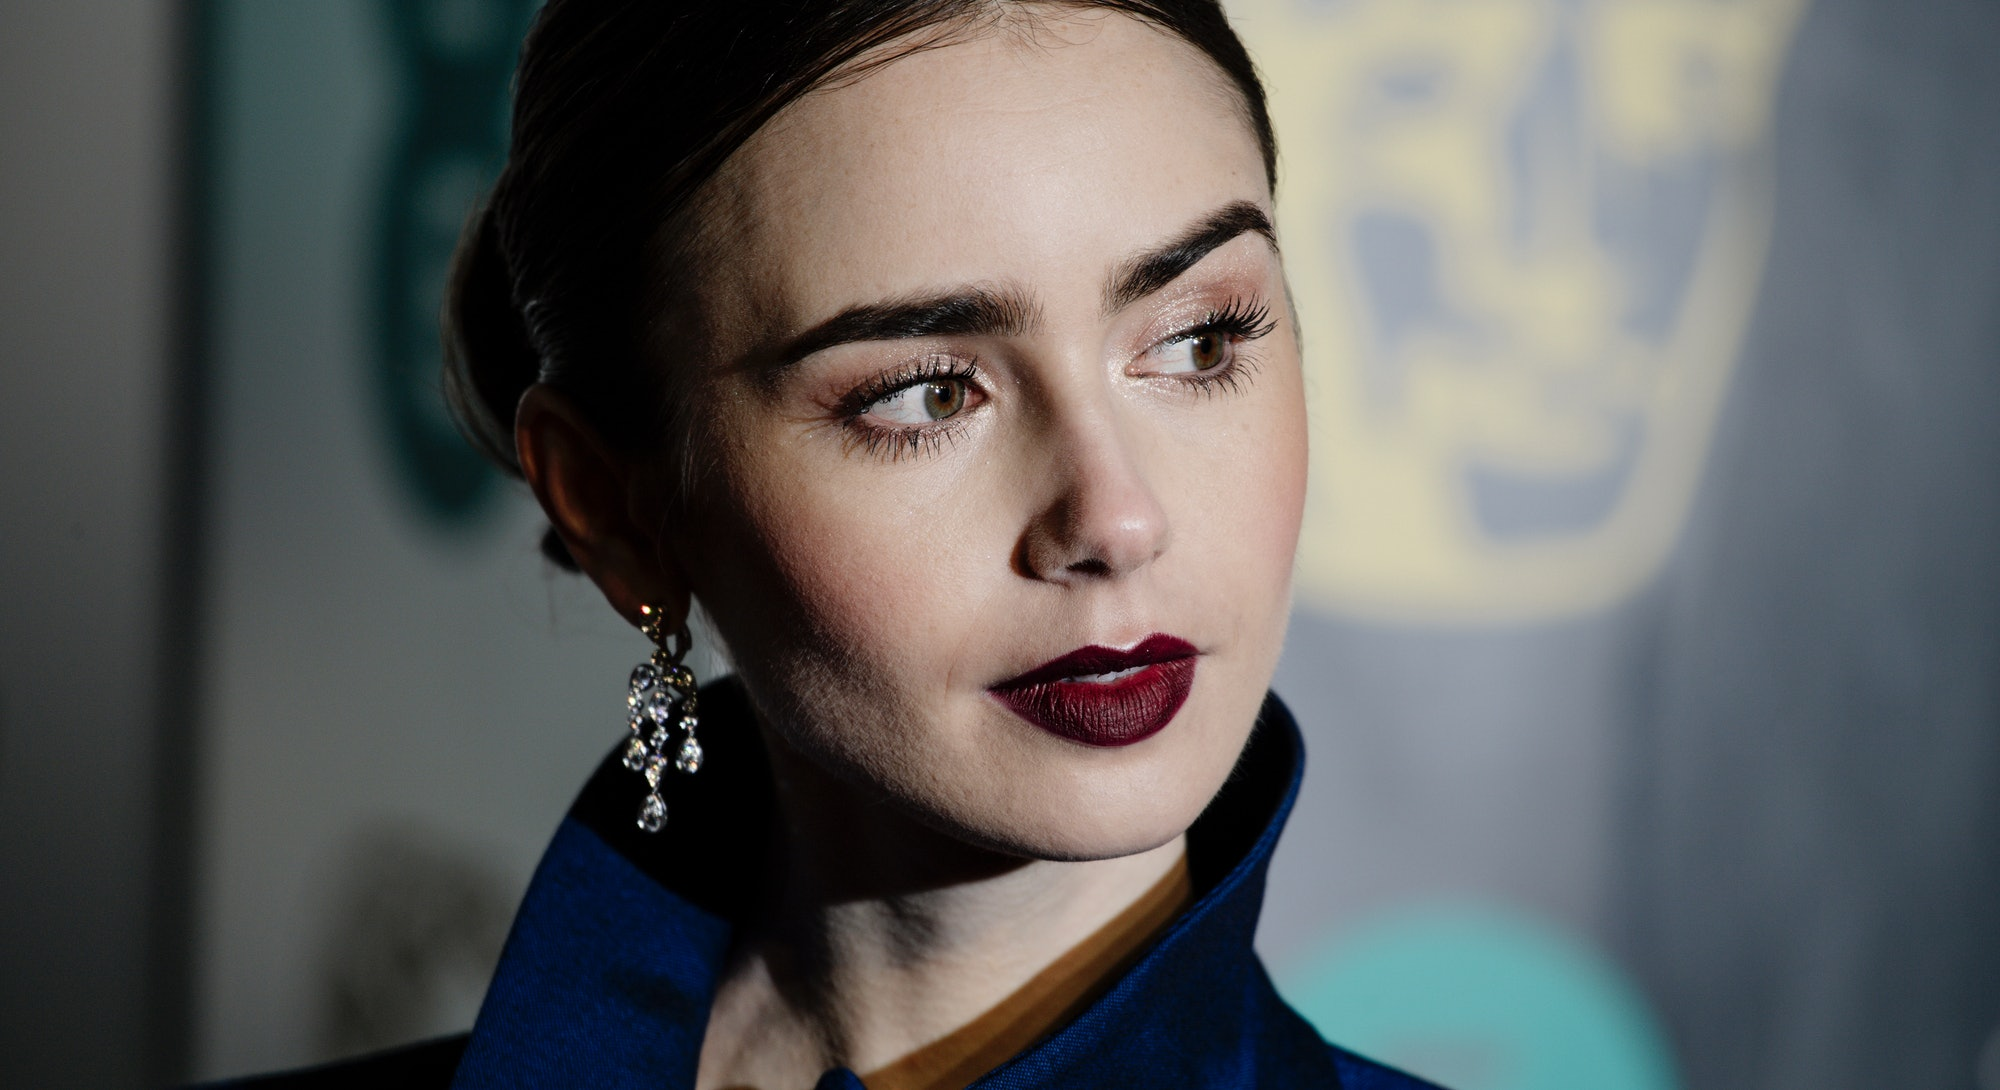 Lily Collins wears dark lipstick, along with a middle part, and her hair pulled back